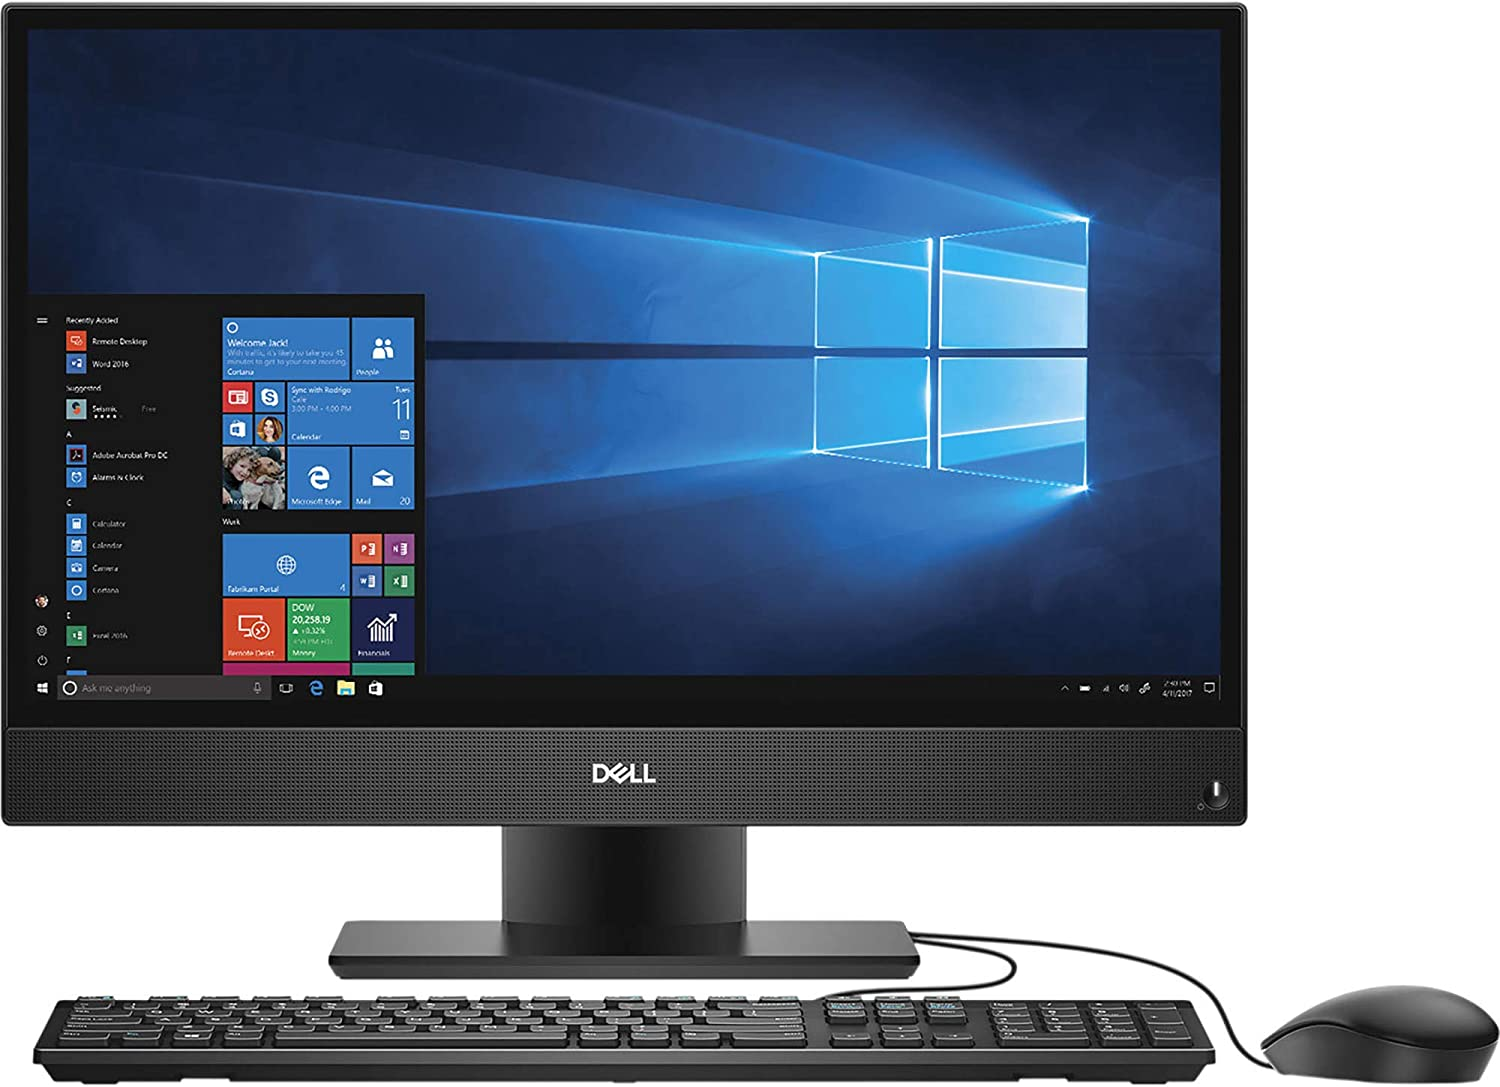 "Dell OptiPlex 5260 1920 x 1080 All-in-One Desktop Computer with Intel Core i5-8500 3 GHz Hexa-Core, 8GB RAM, 256GB SSD, 21.5"" (503W7)"